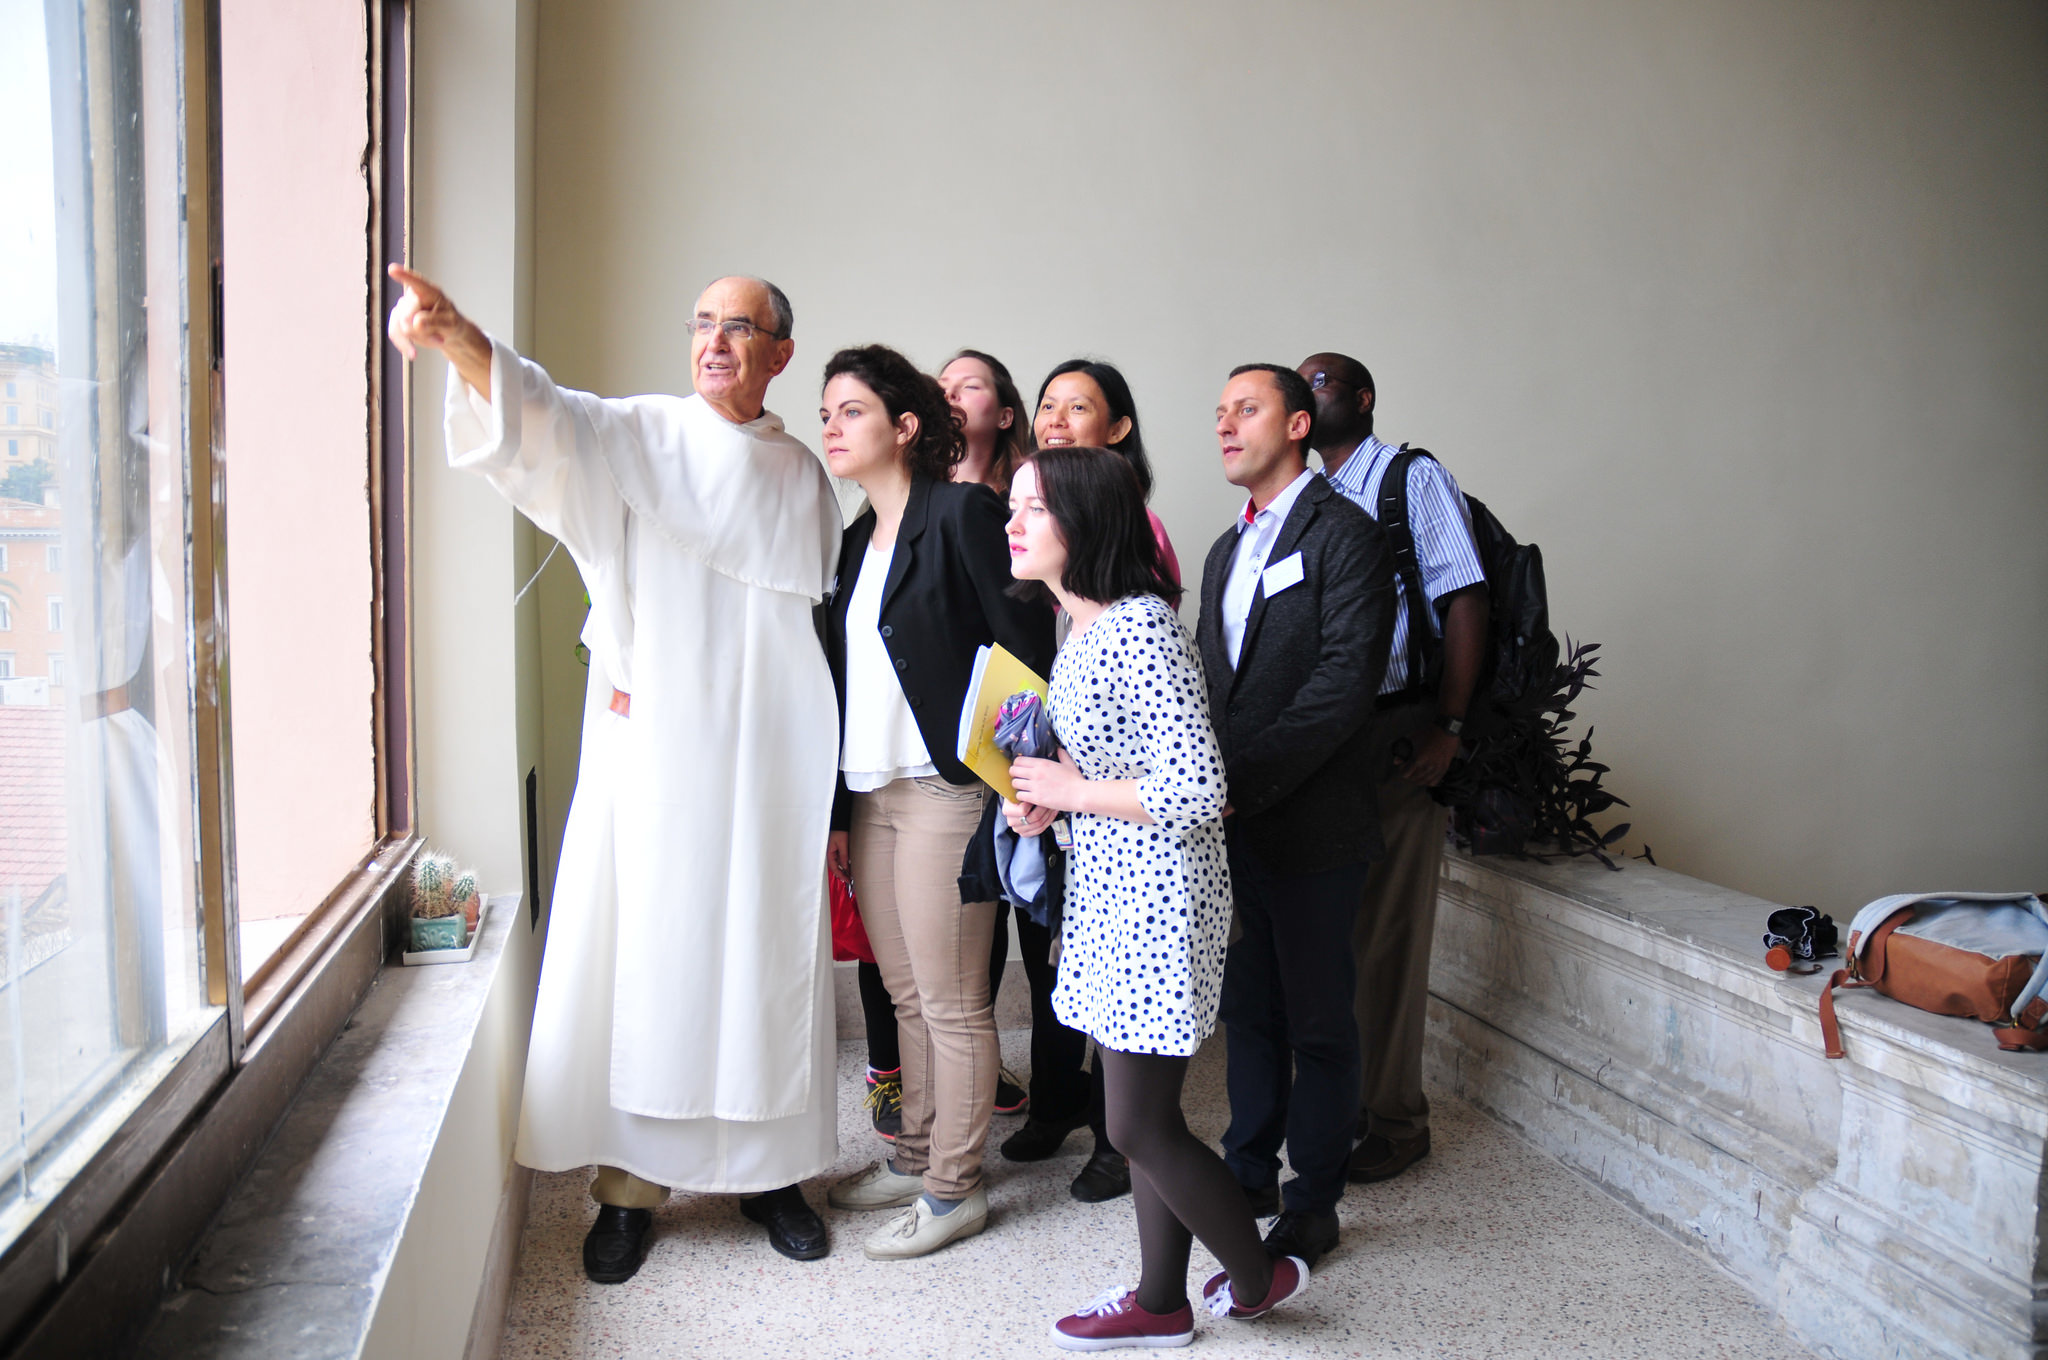 Photo: Priest with a group of professionals